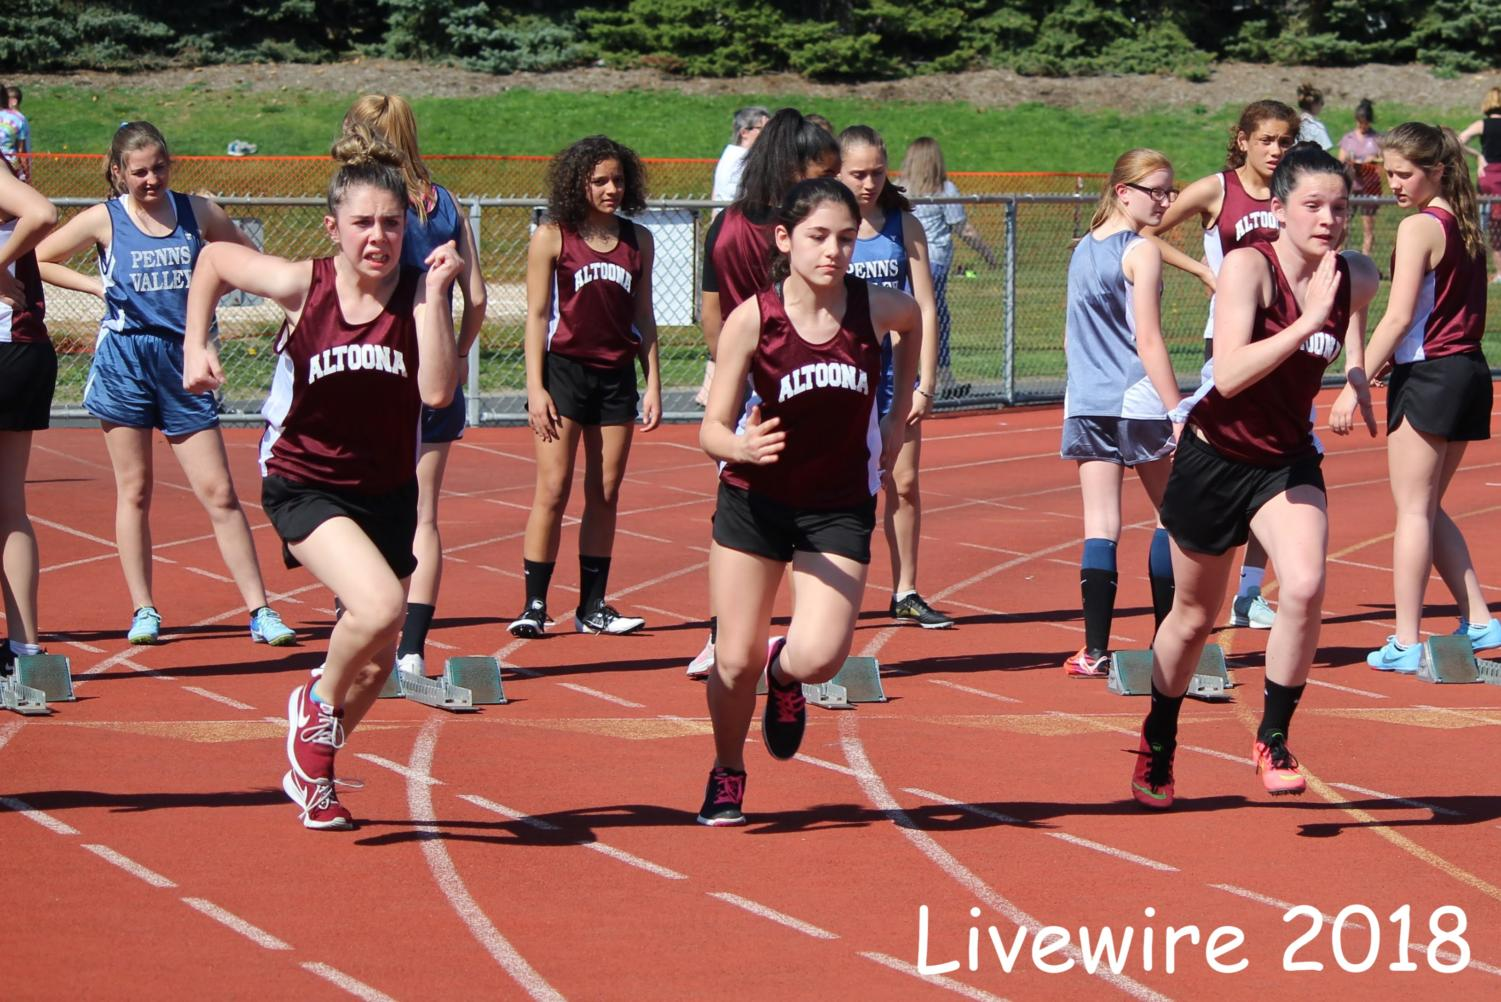 Set%21+Three+of+the+Altoona+sprinters+sprint+in+the+100+meter+dash.+The+sprinters+also+ran+in+the+4x1.+